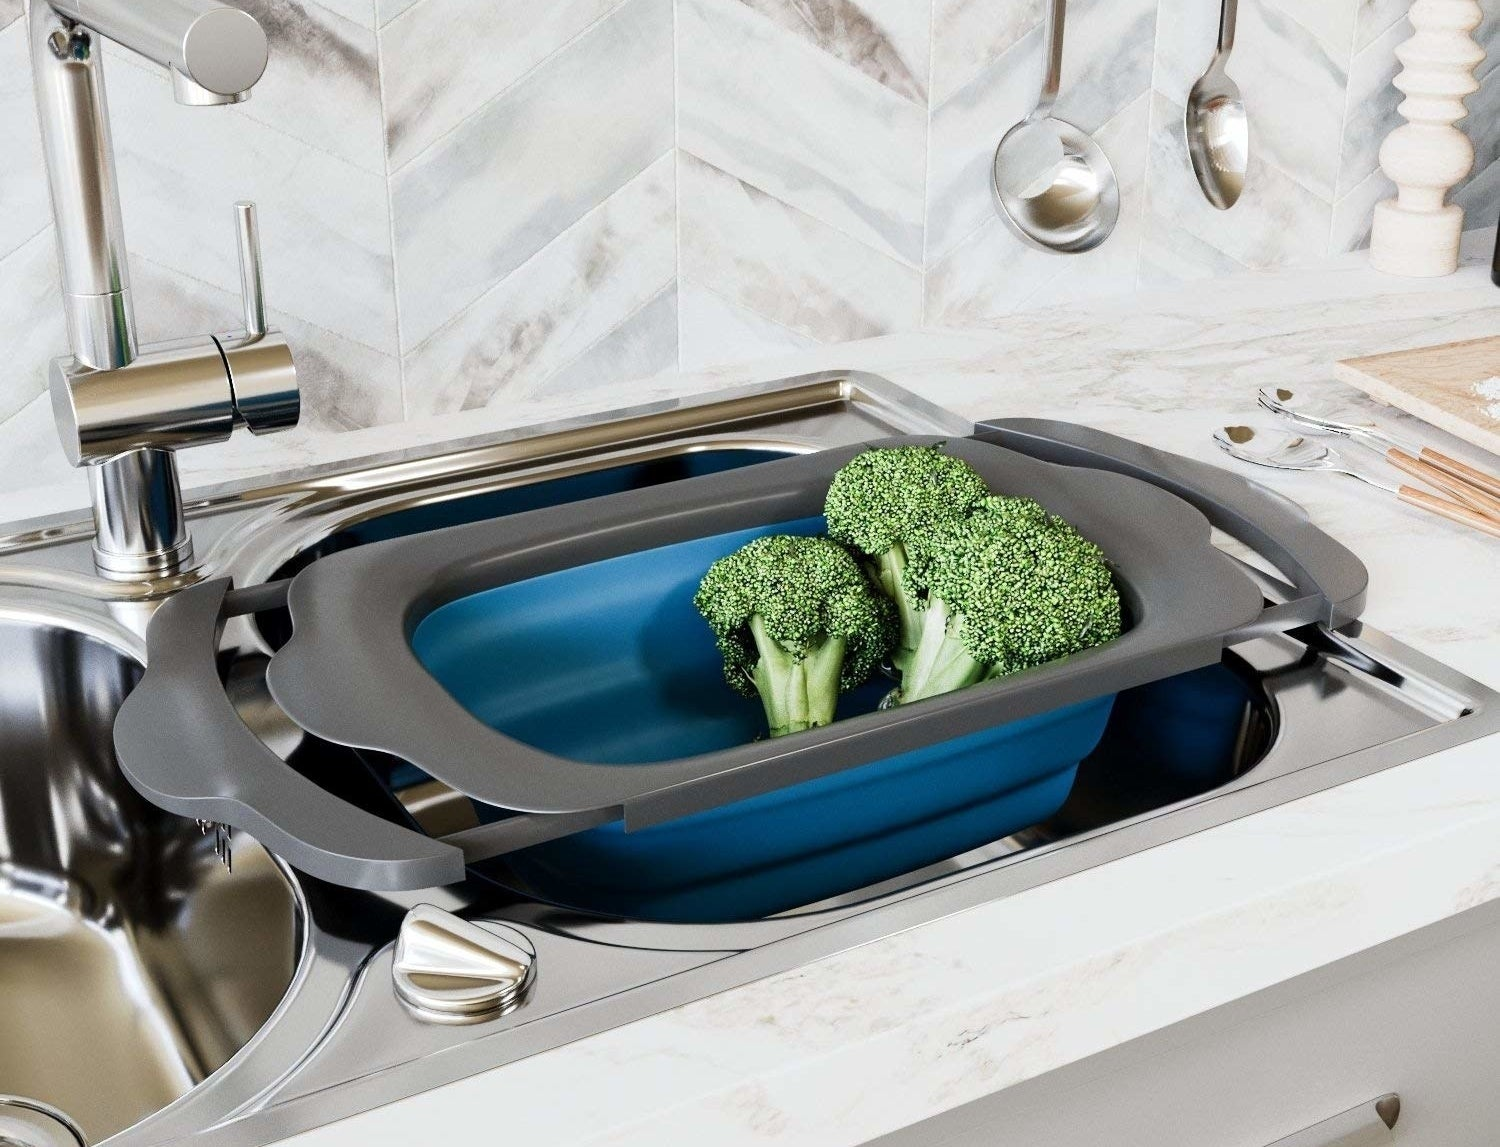 Colander with expandable arms hooked onto the edge of both sides of the sink to easily wash veggies